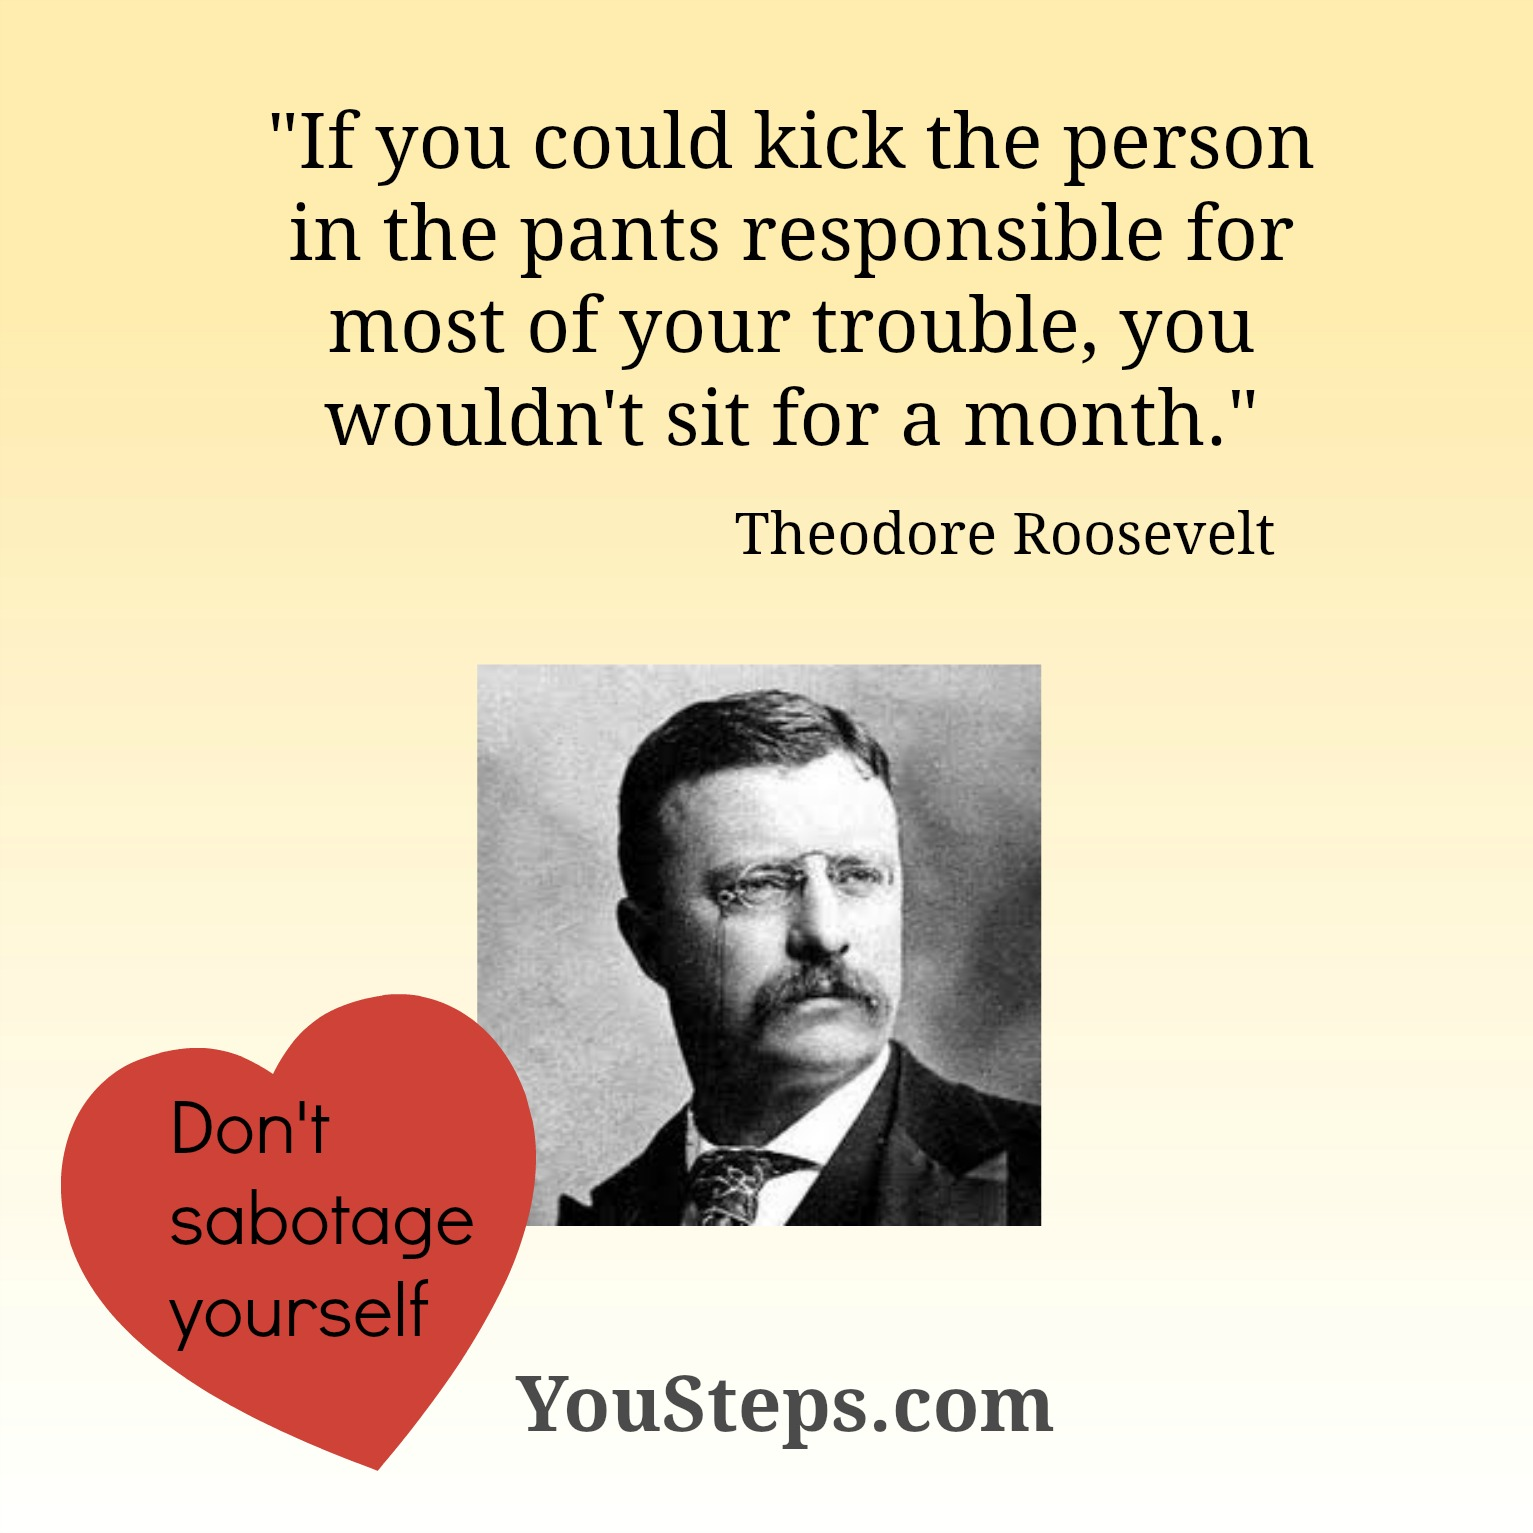 Theodore Roosevelt Quotes: Theodore Roosevelt Quotes On Courage. QuotesGram